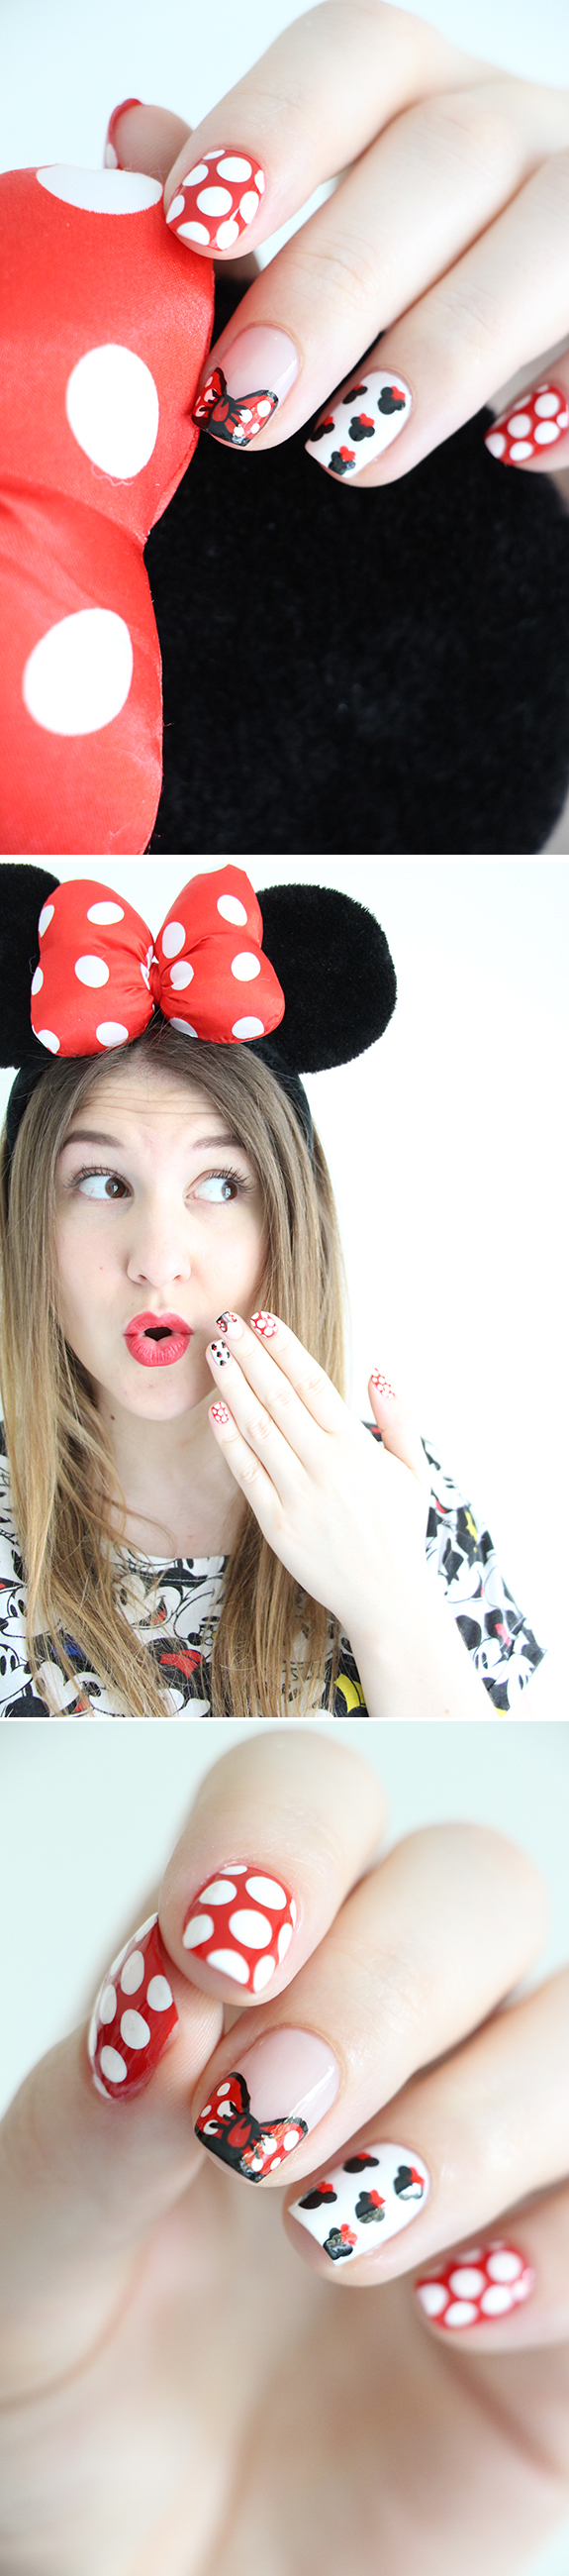 minnie-nails-3